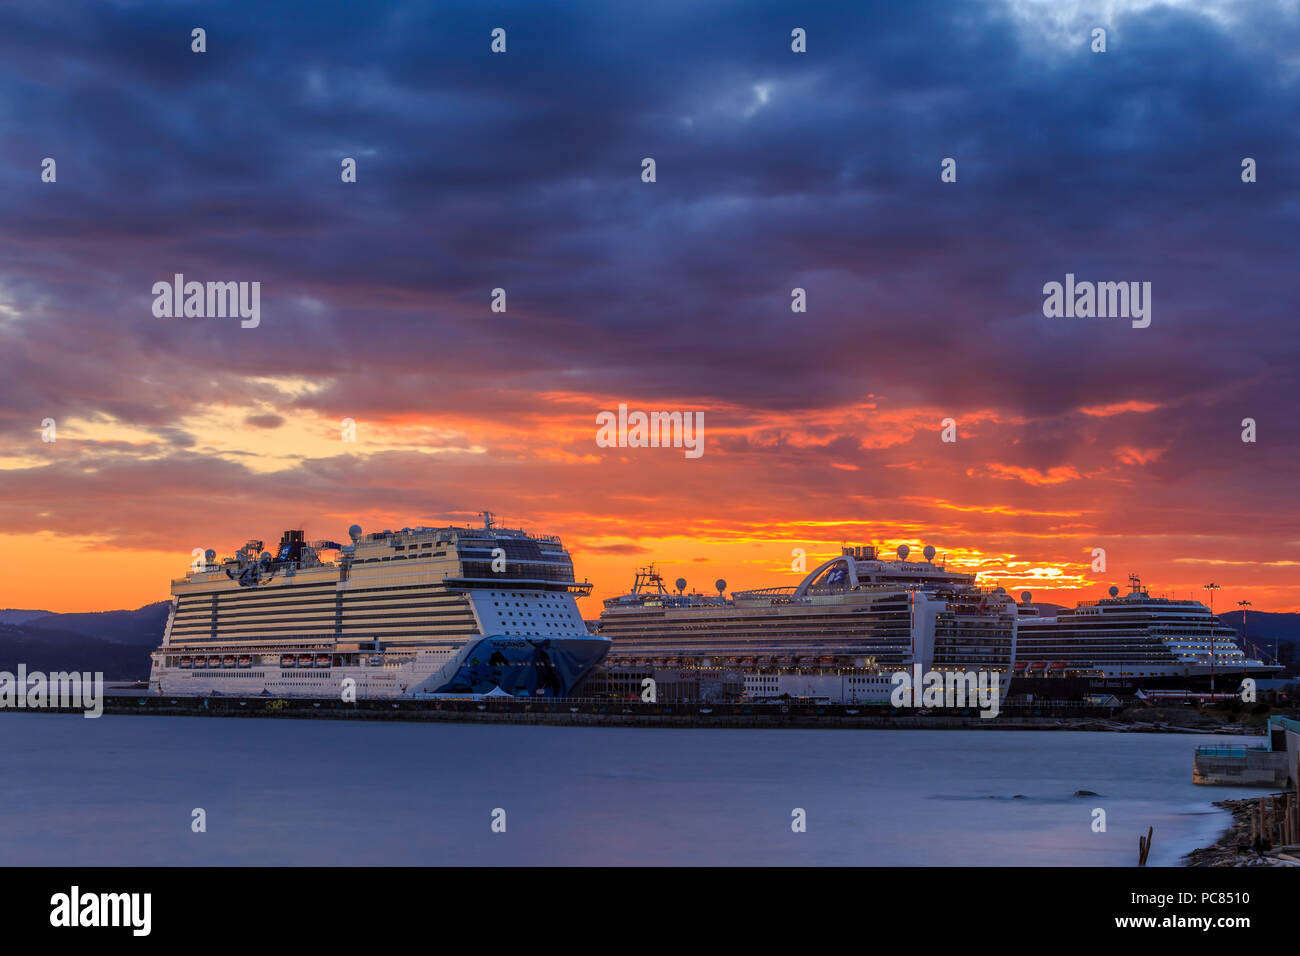 Cruise ships Norwegian Bliss, Ruby Princess, and Eurodam berthed at Ogden Point port-Victoria, British Columbia, Canada. - Stock Image